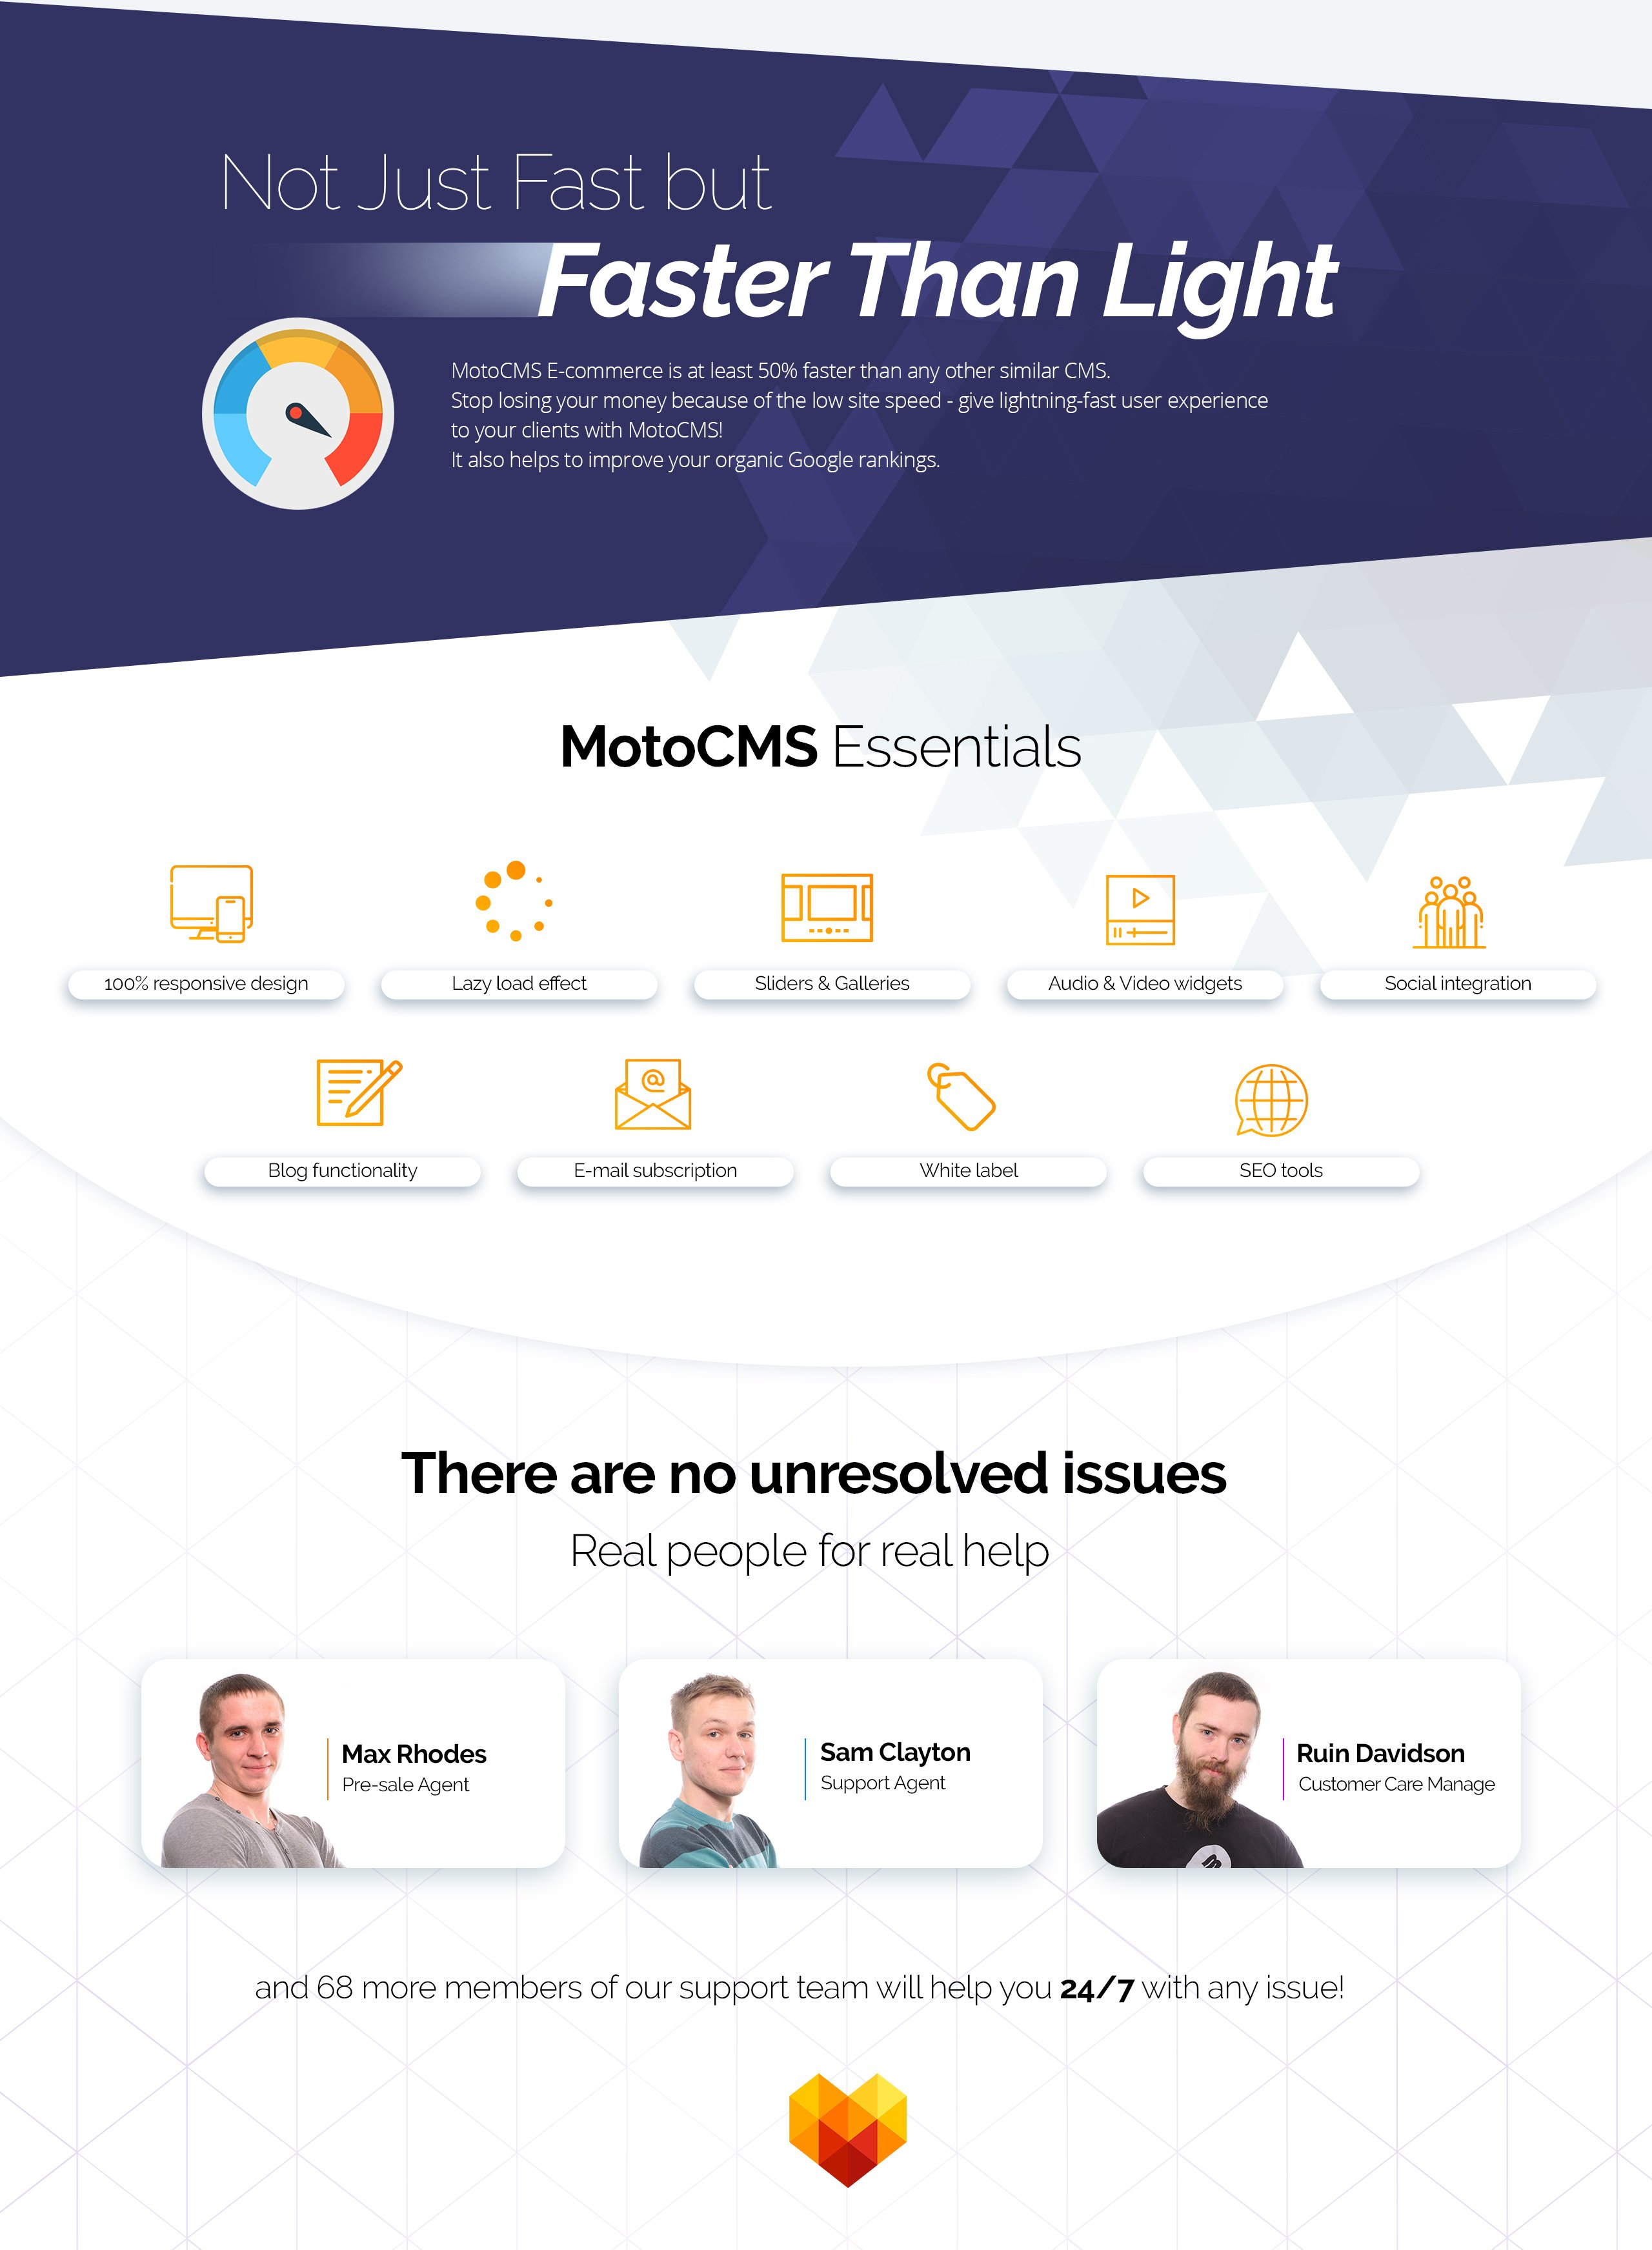 Gento - Wheels and Tires Store MotoCMS Ecommerce Template